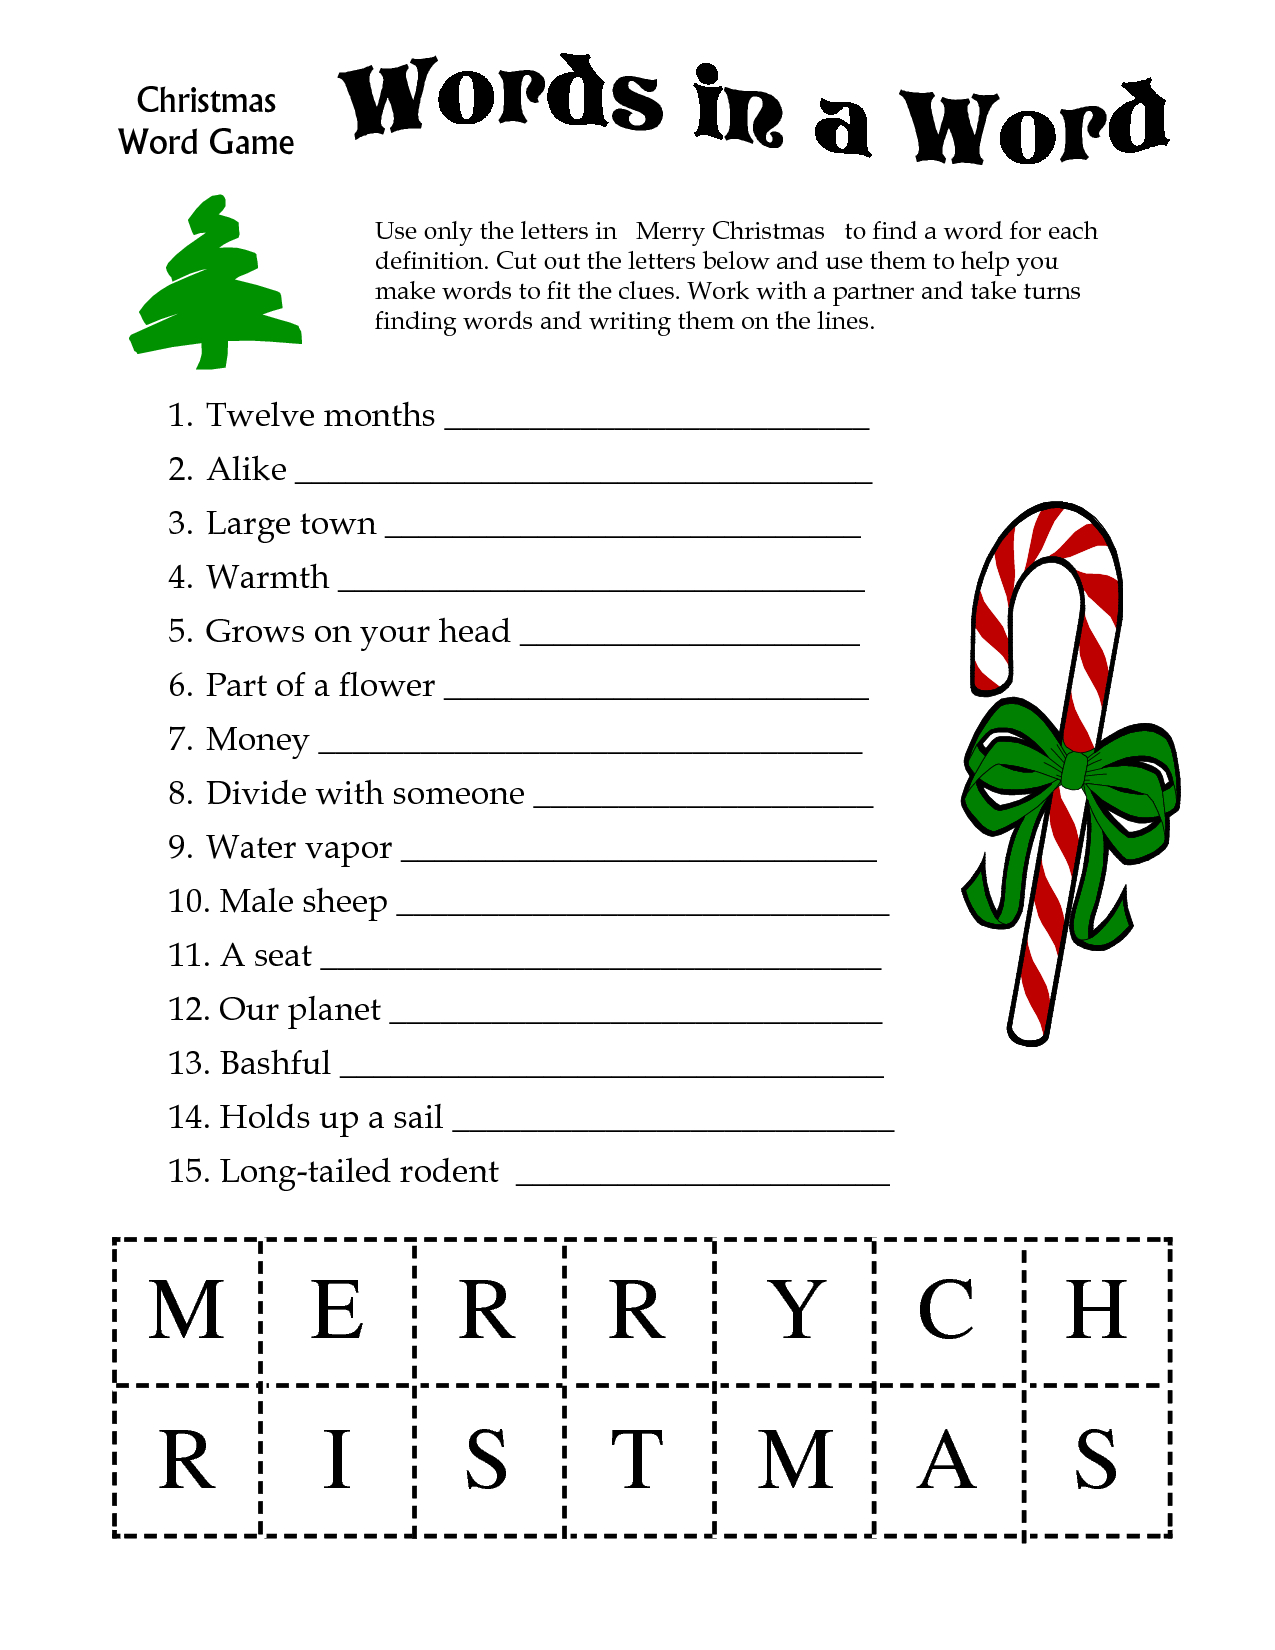 5 Images Of Free Printable Christmas Word Games | Printablee - Free Printable Christmas Puzzle Games